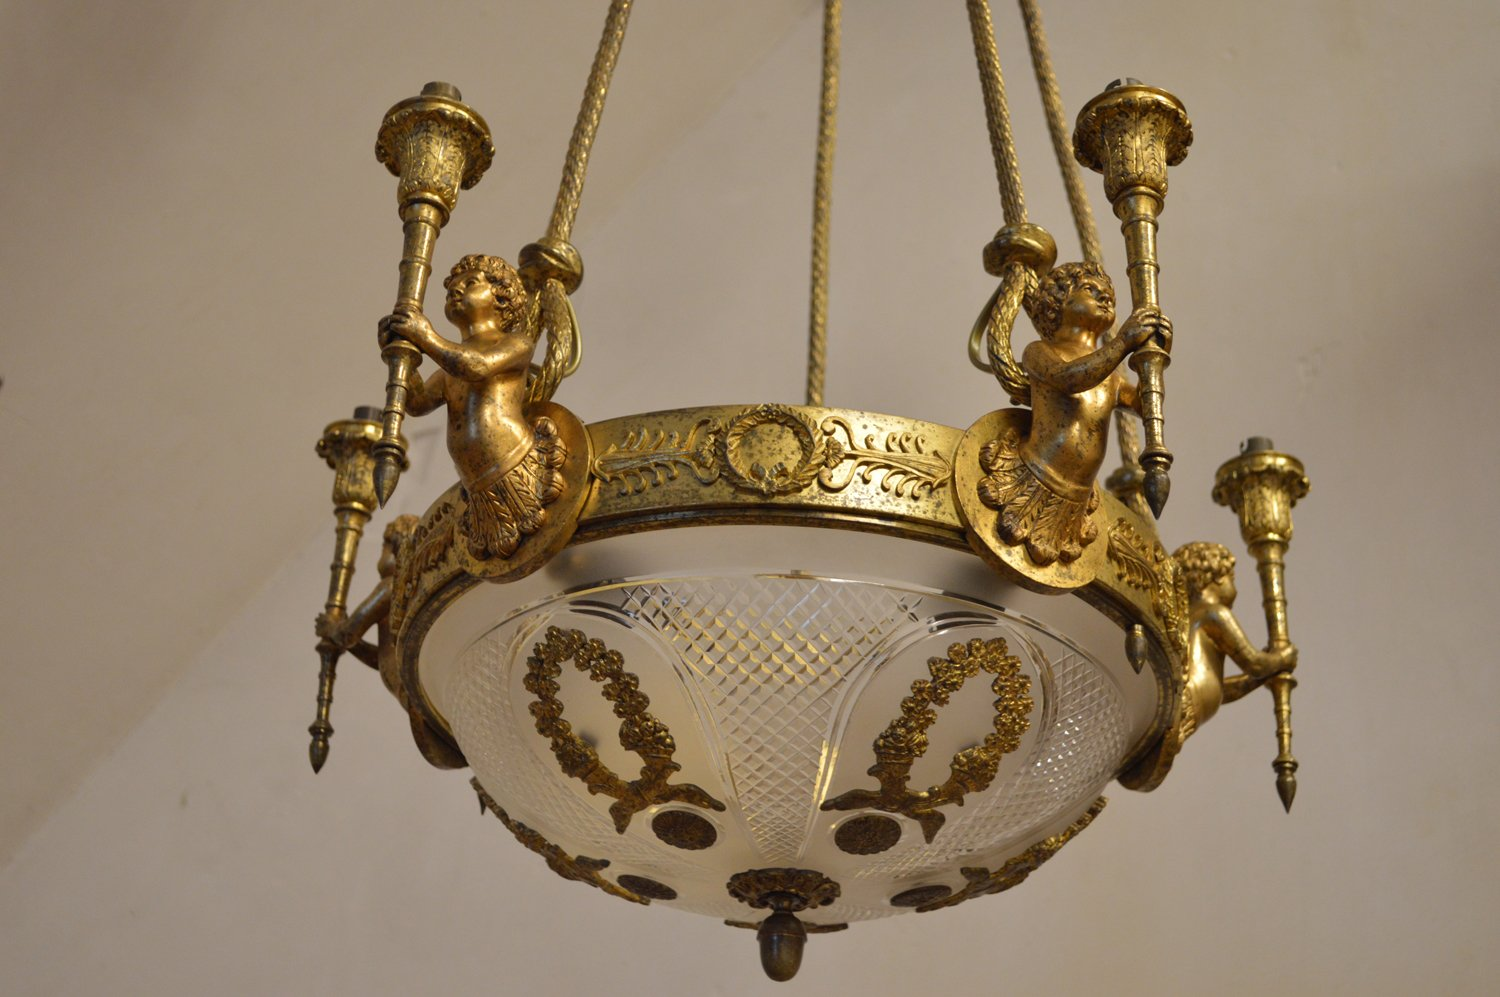 Antique Louis XVI Style Chandelier with Cherubs in Gilt Bronze - Antique Louis XVI Style Chandelier With Cherubs In Gilt Bronze For